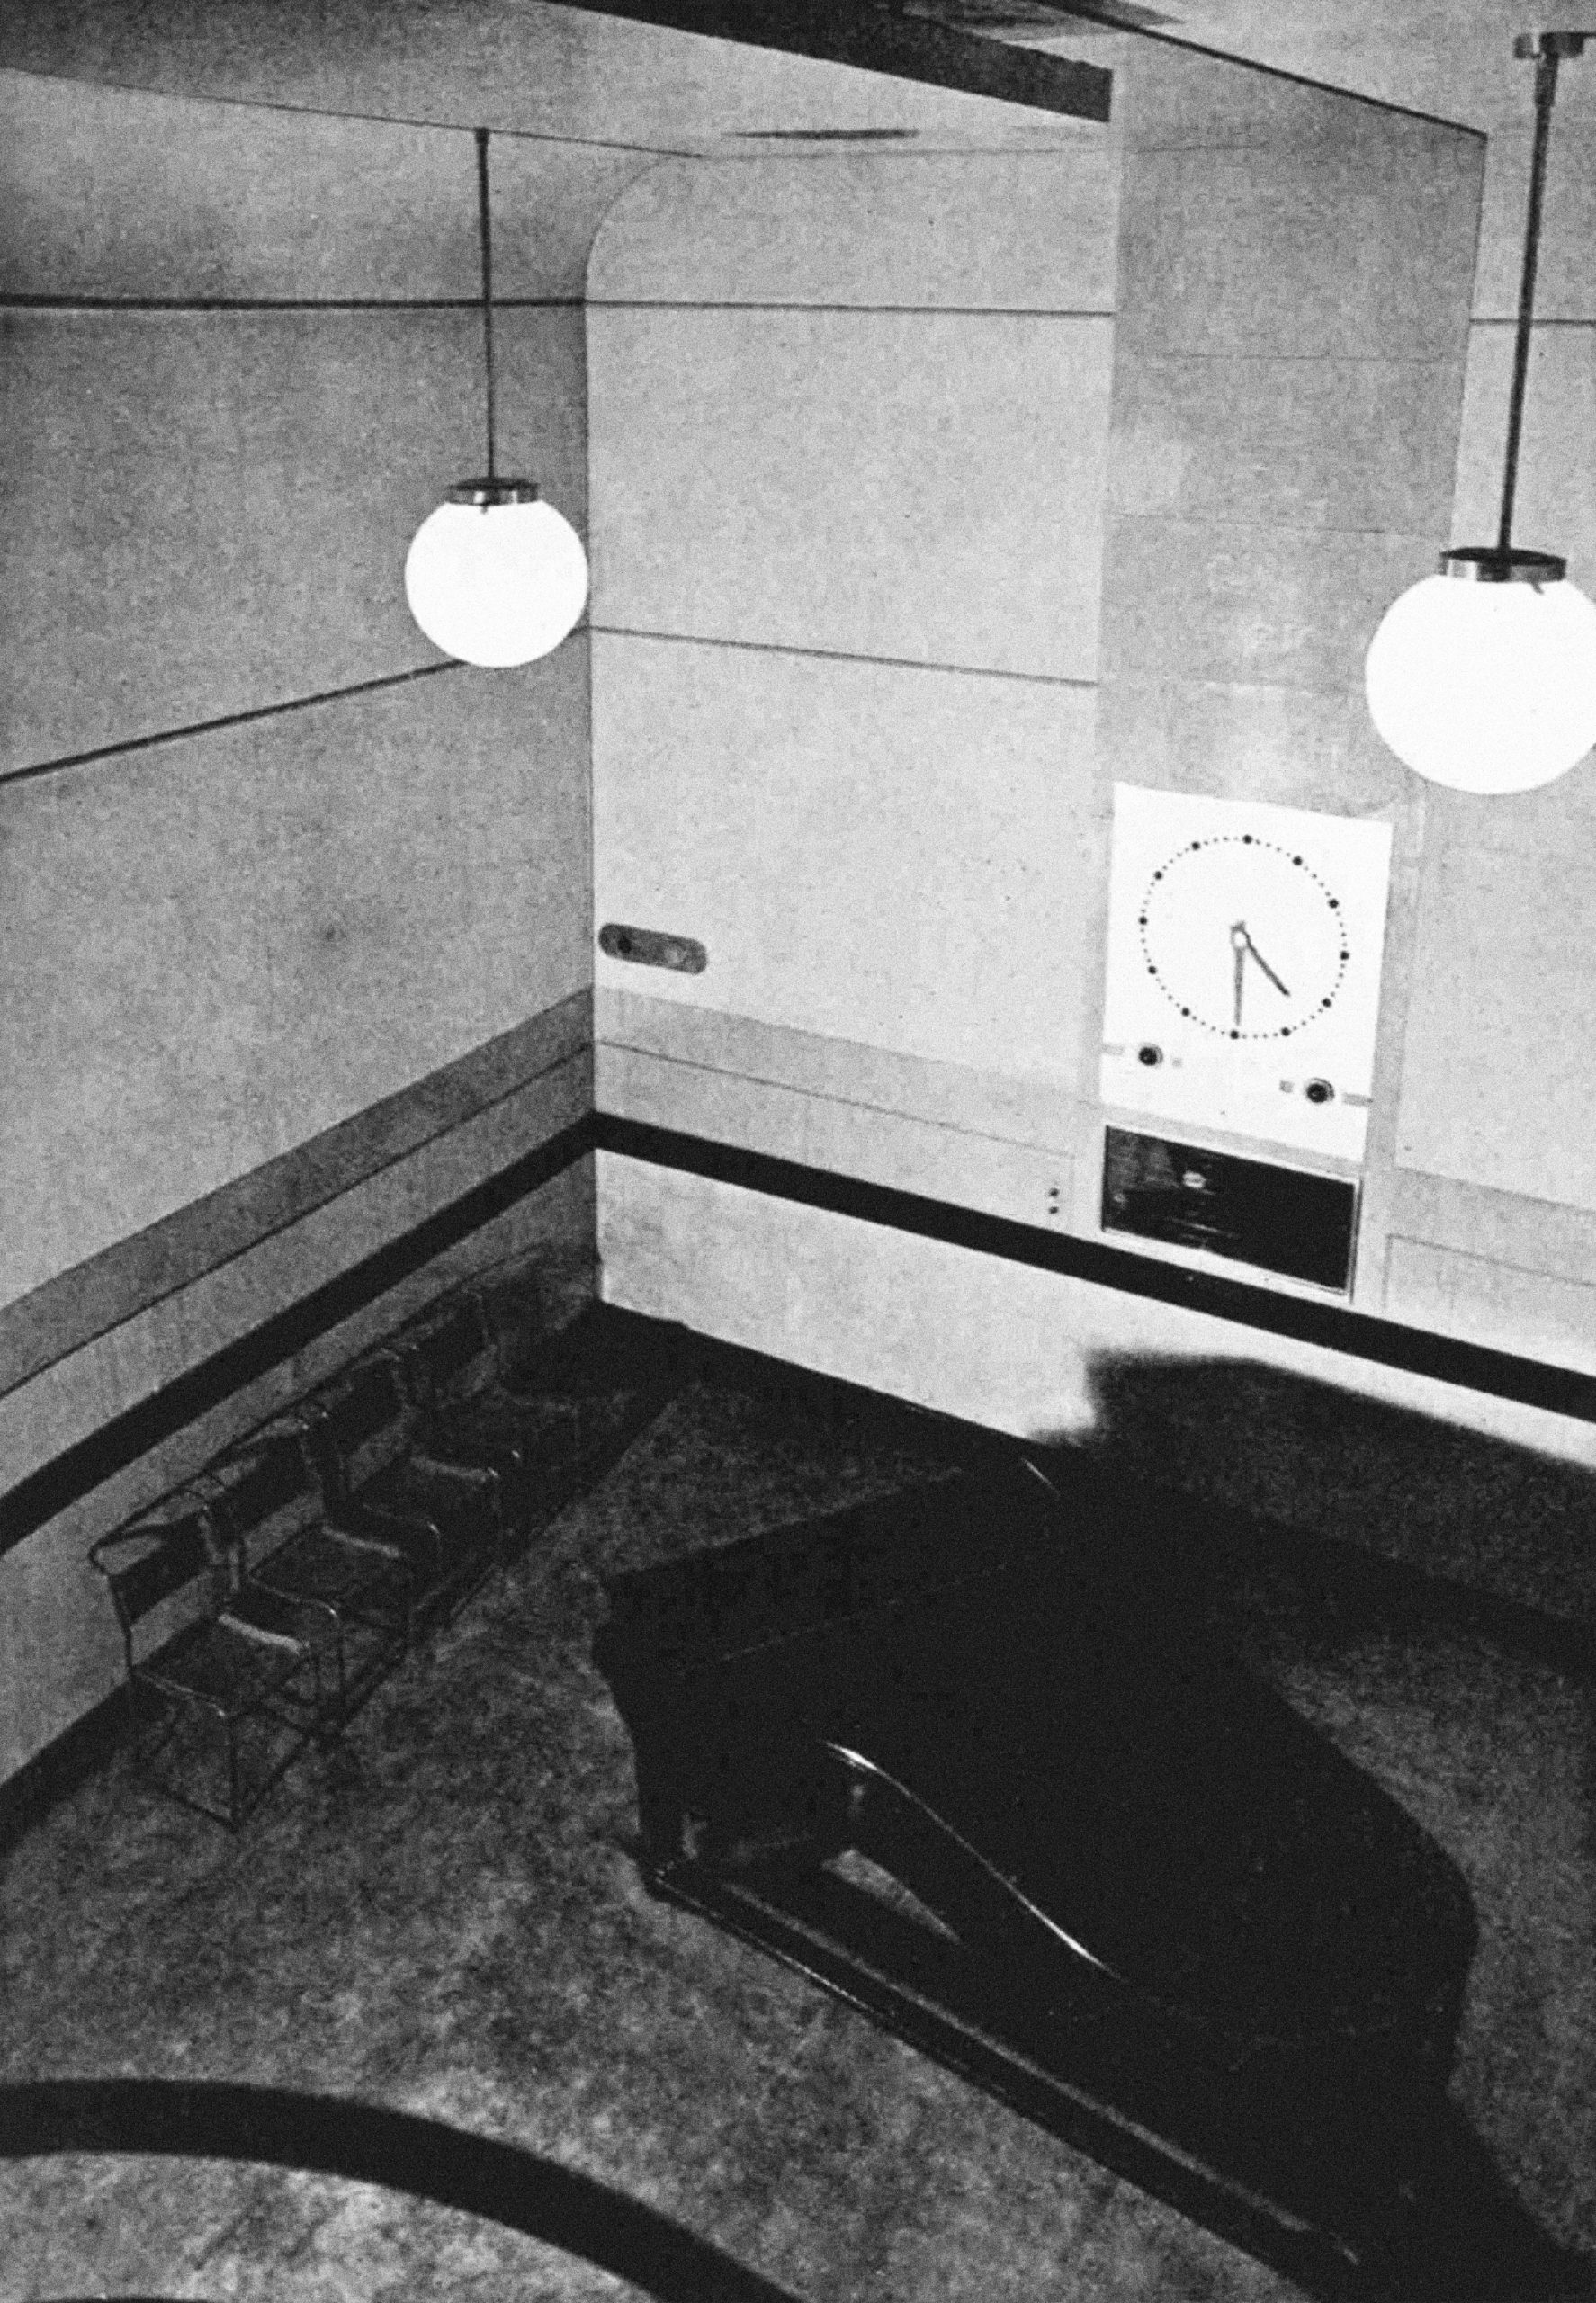 Looking down into studio with a piano and a very large illuminated clock